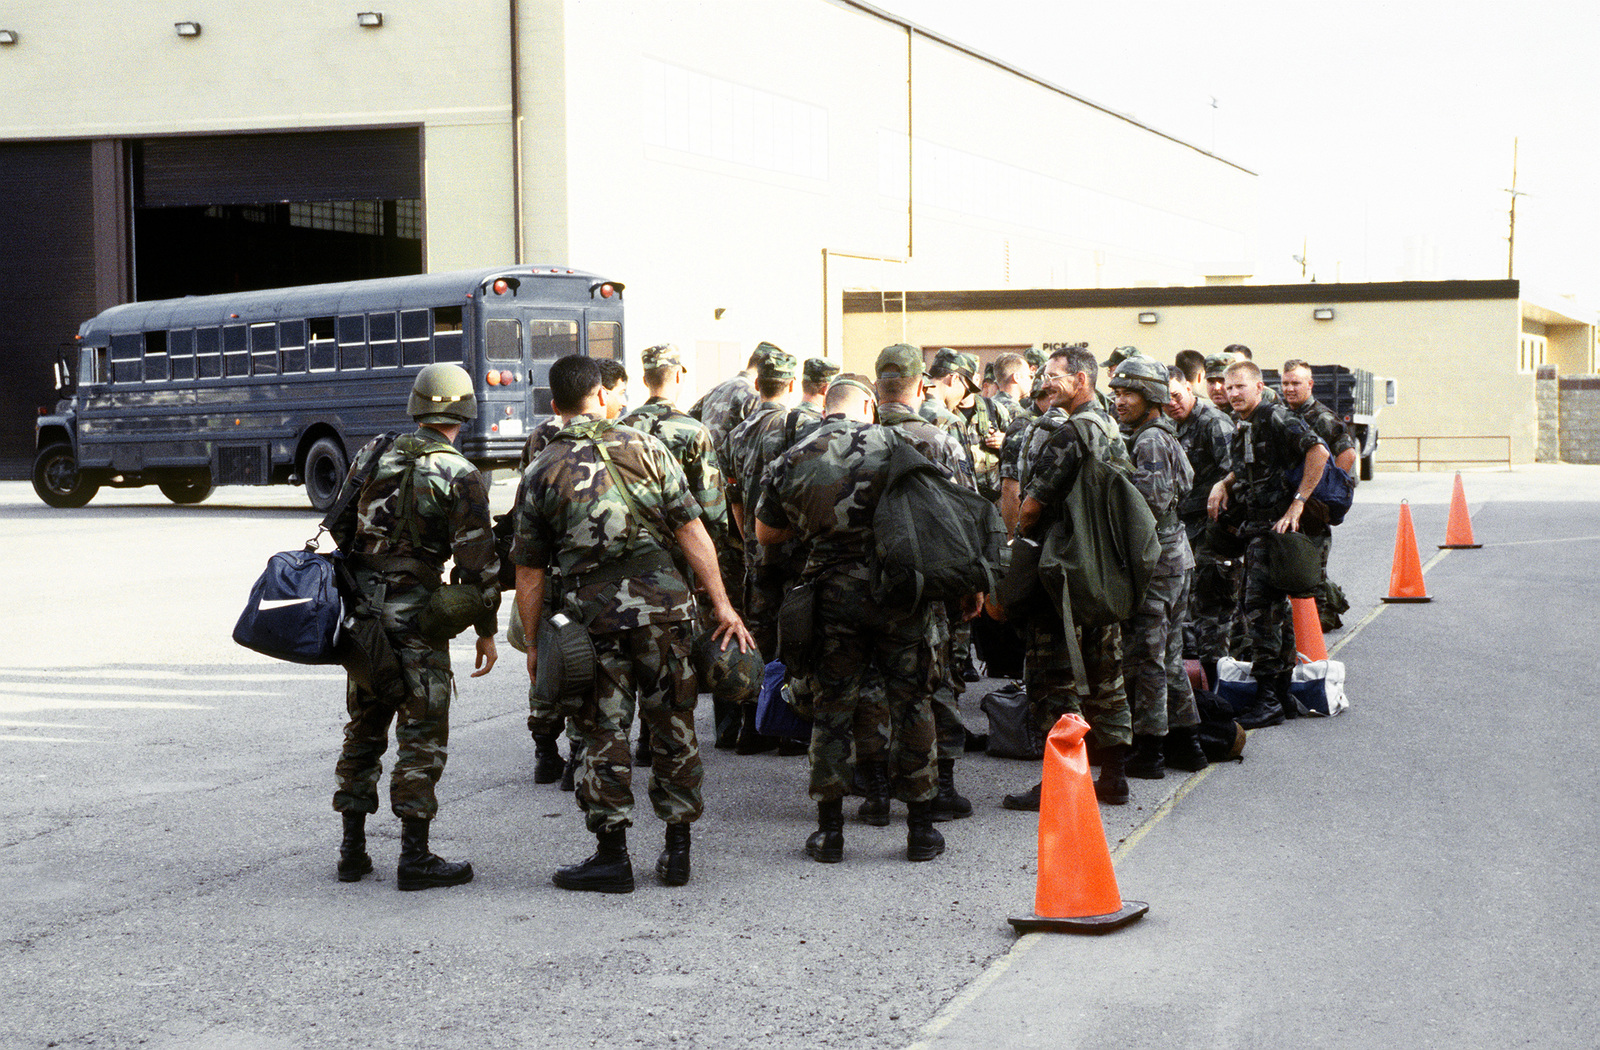 Members of the 9th Fighter Squadron await transportation for deployment to DESERT STRIKE. A blue Air Force bus is seen in the background